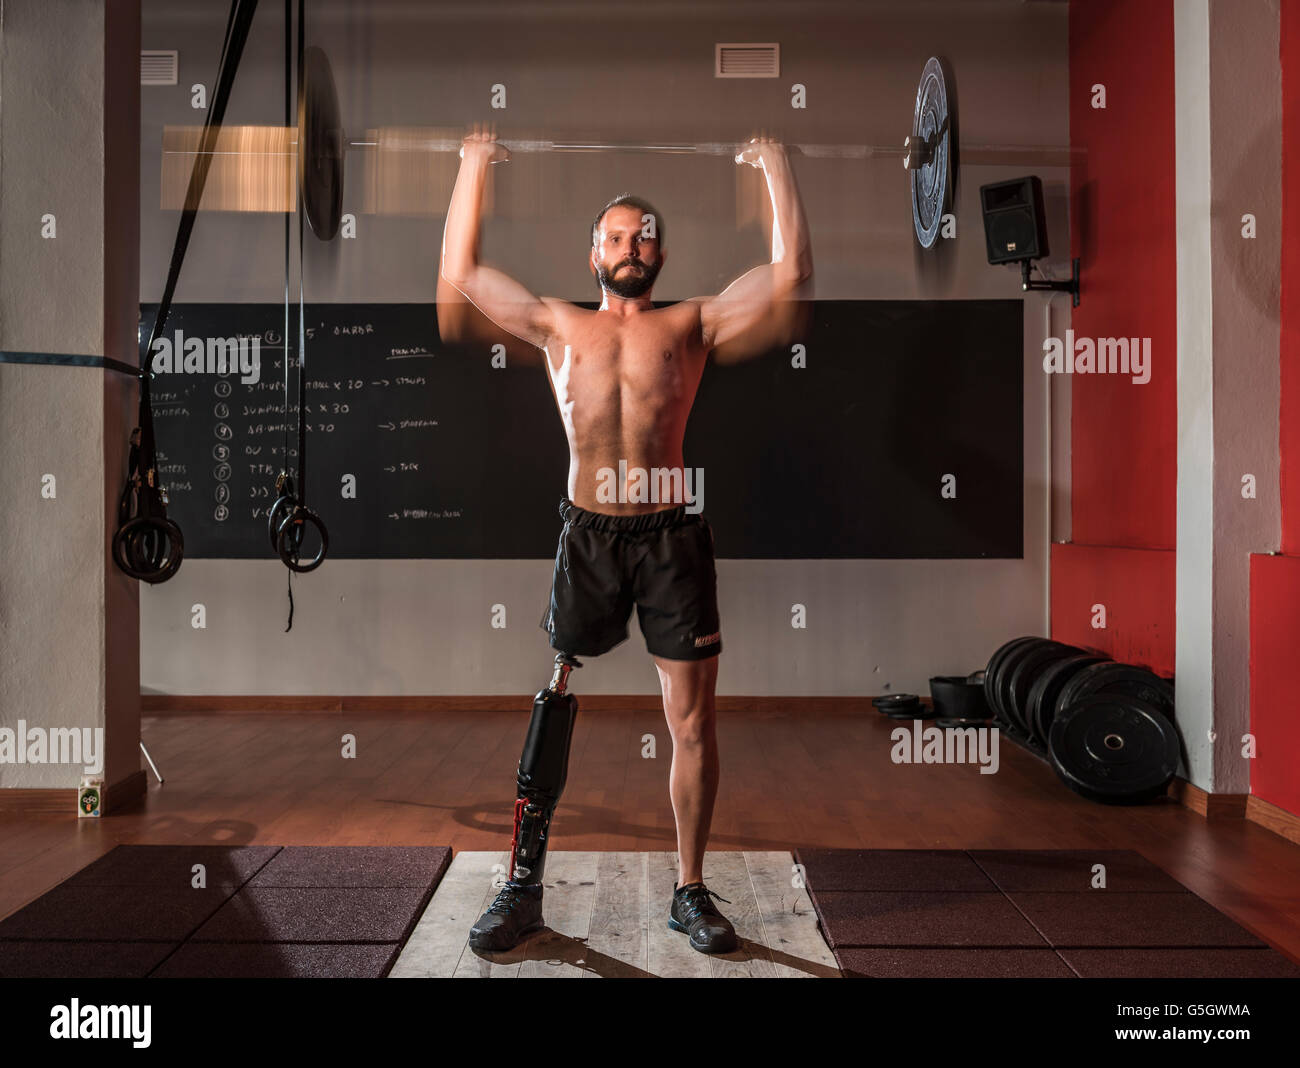 Man with a prosthesis training cross fit at the gym. - Stock Image